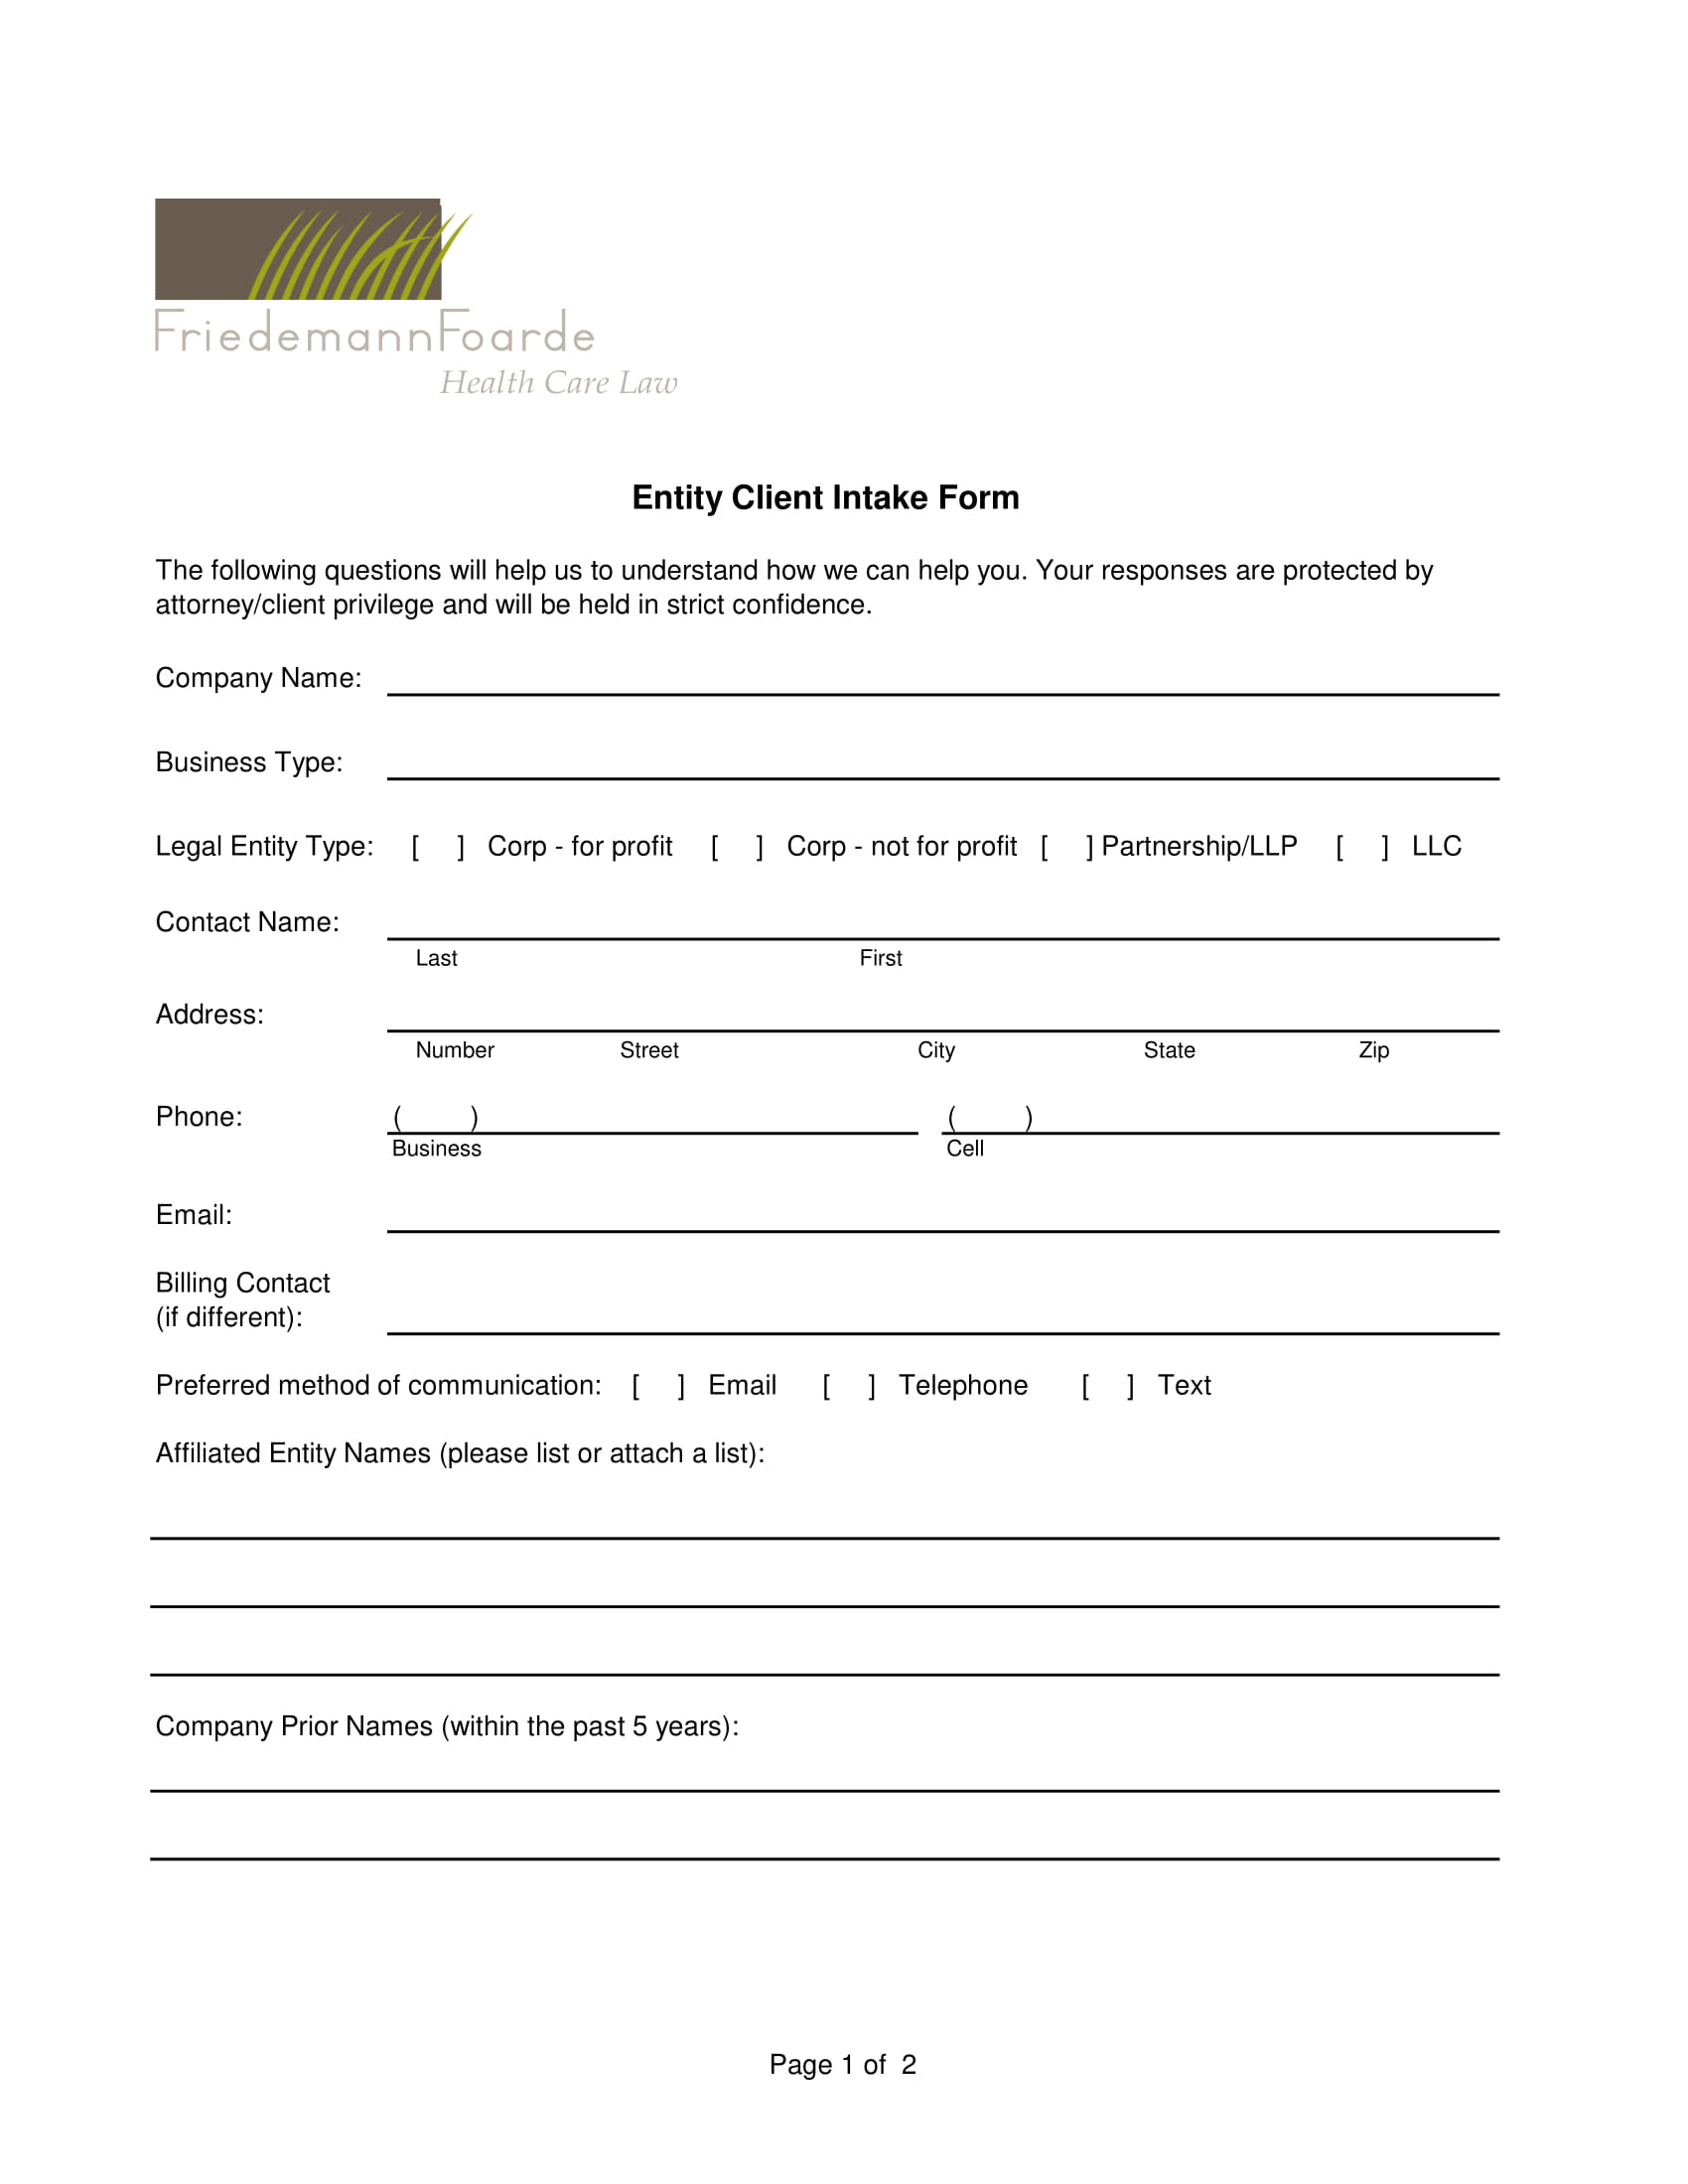 entity client intake form 1